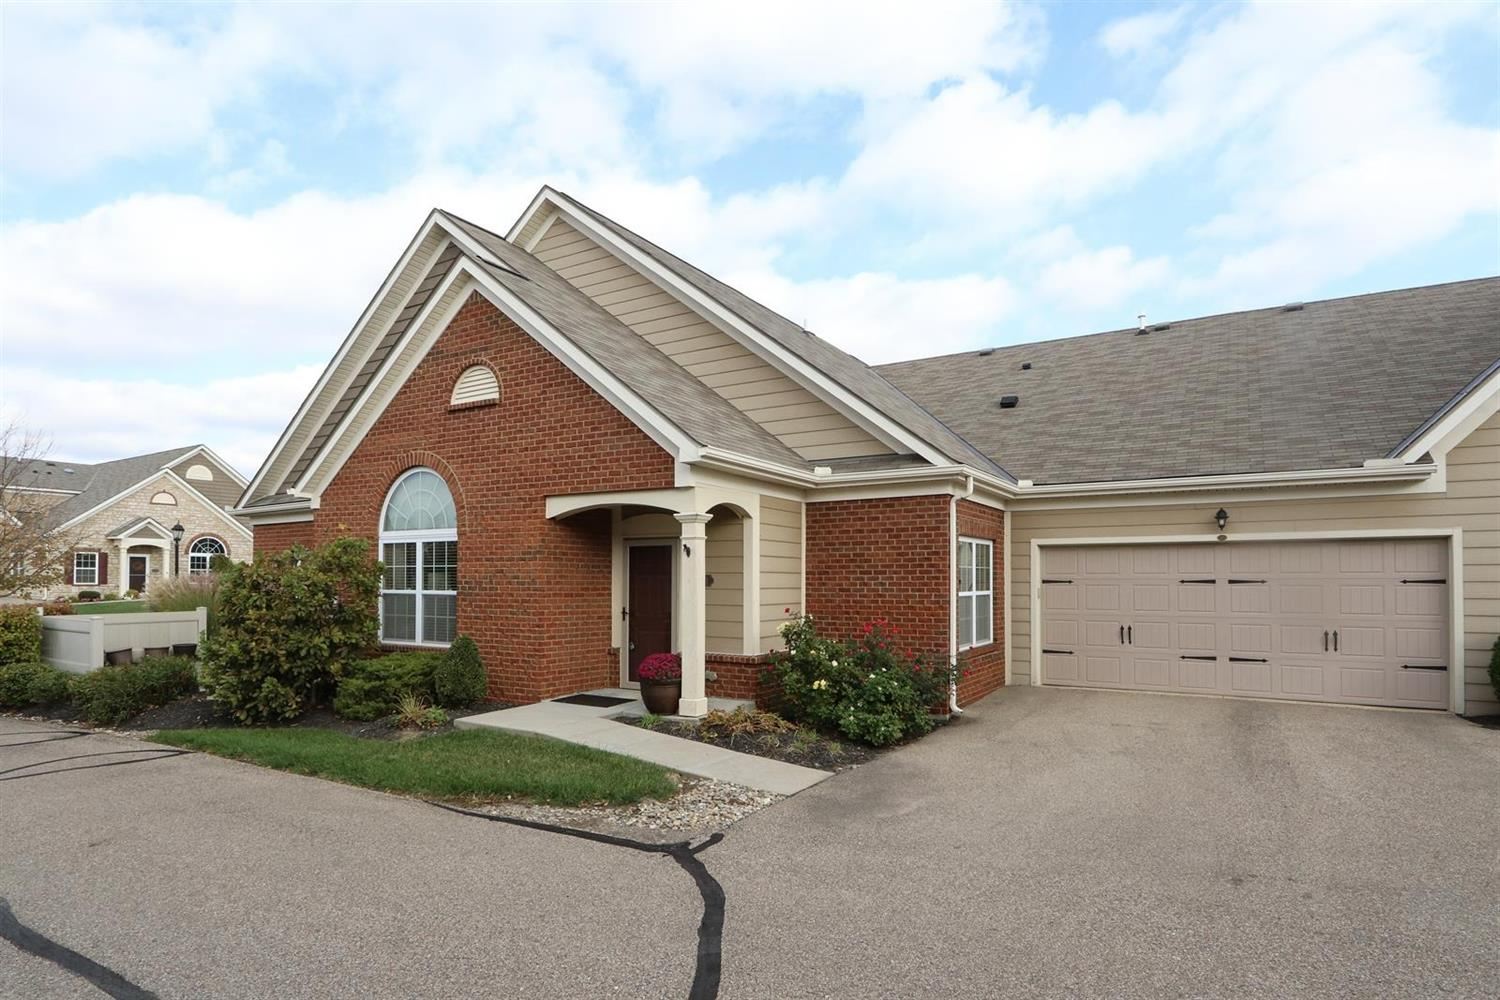 Property for sale at 6871 Liberty Circle, Liberty Twp,  Ohio 45069